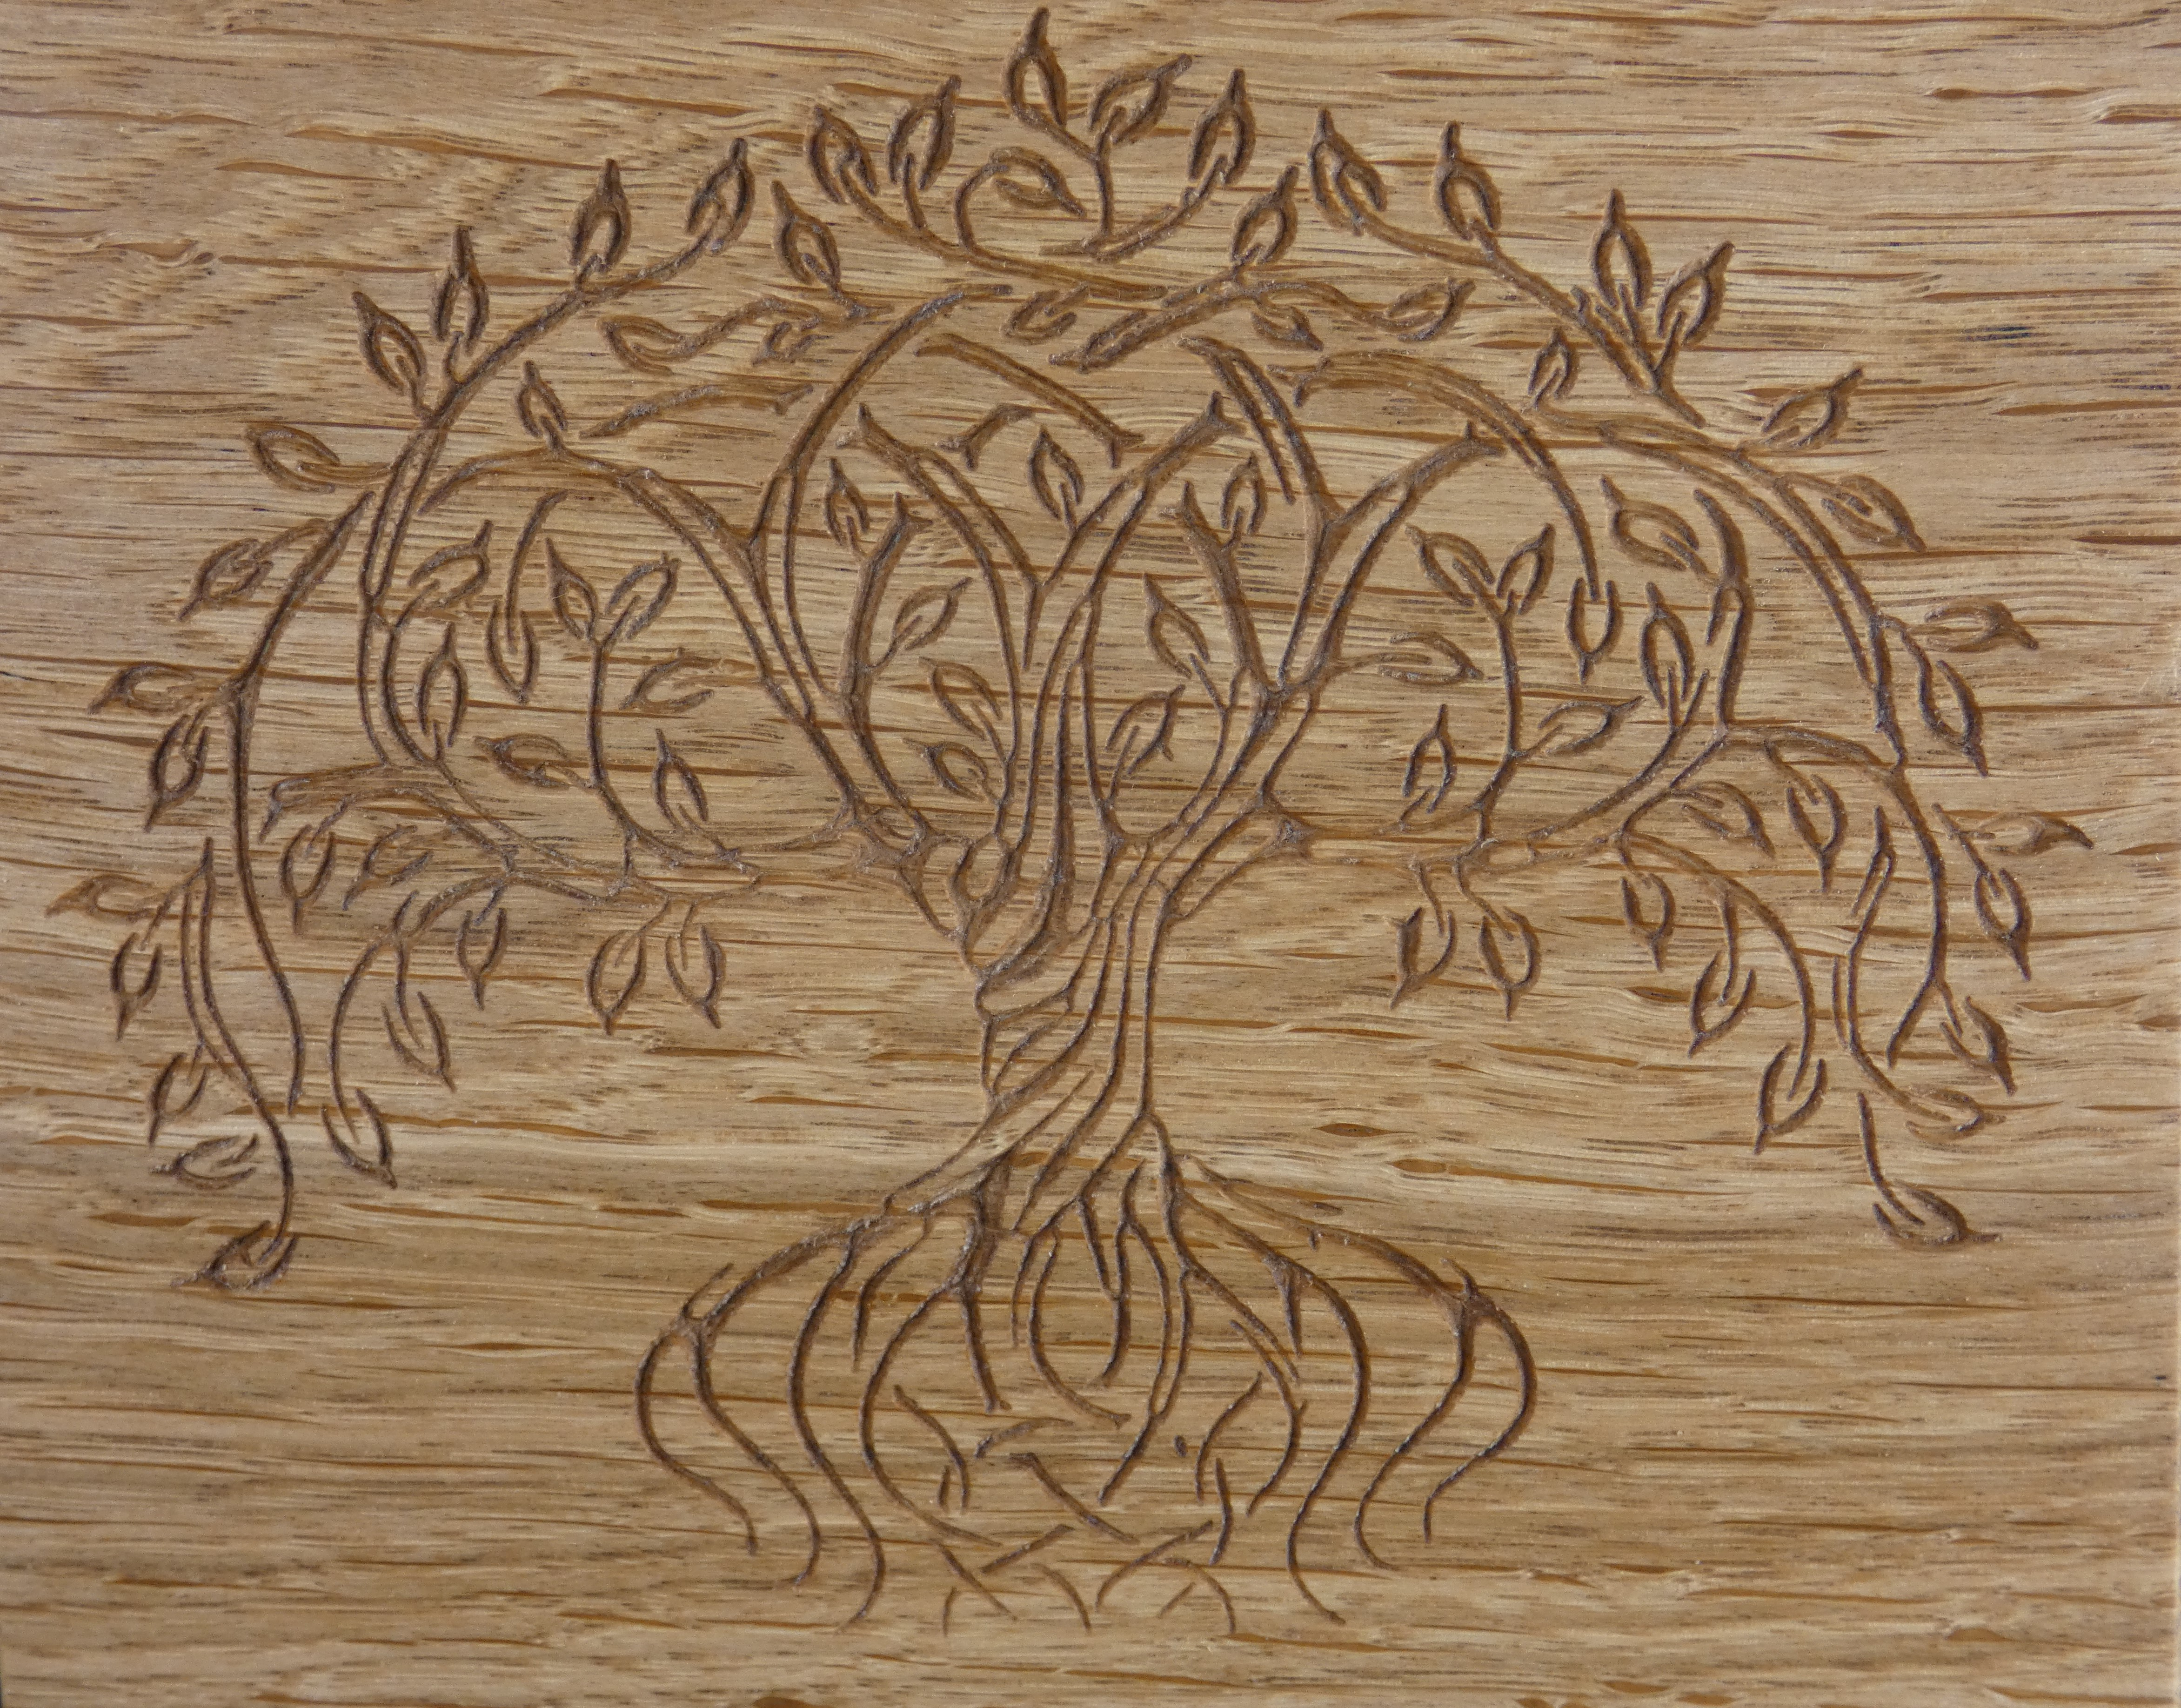 Tree Of Life Wall Decor Throughout Fashionable Tree Of Life Wood Wall Art – The Grain Attraction (View 14 of 20)